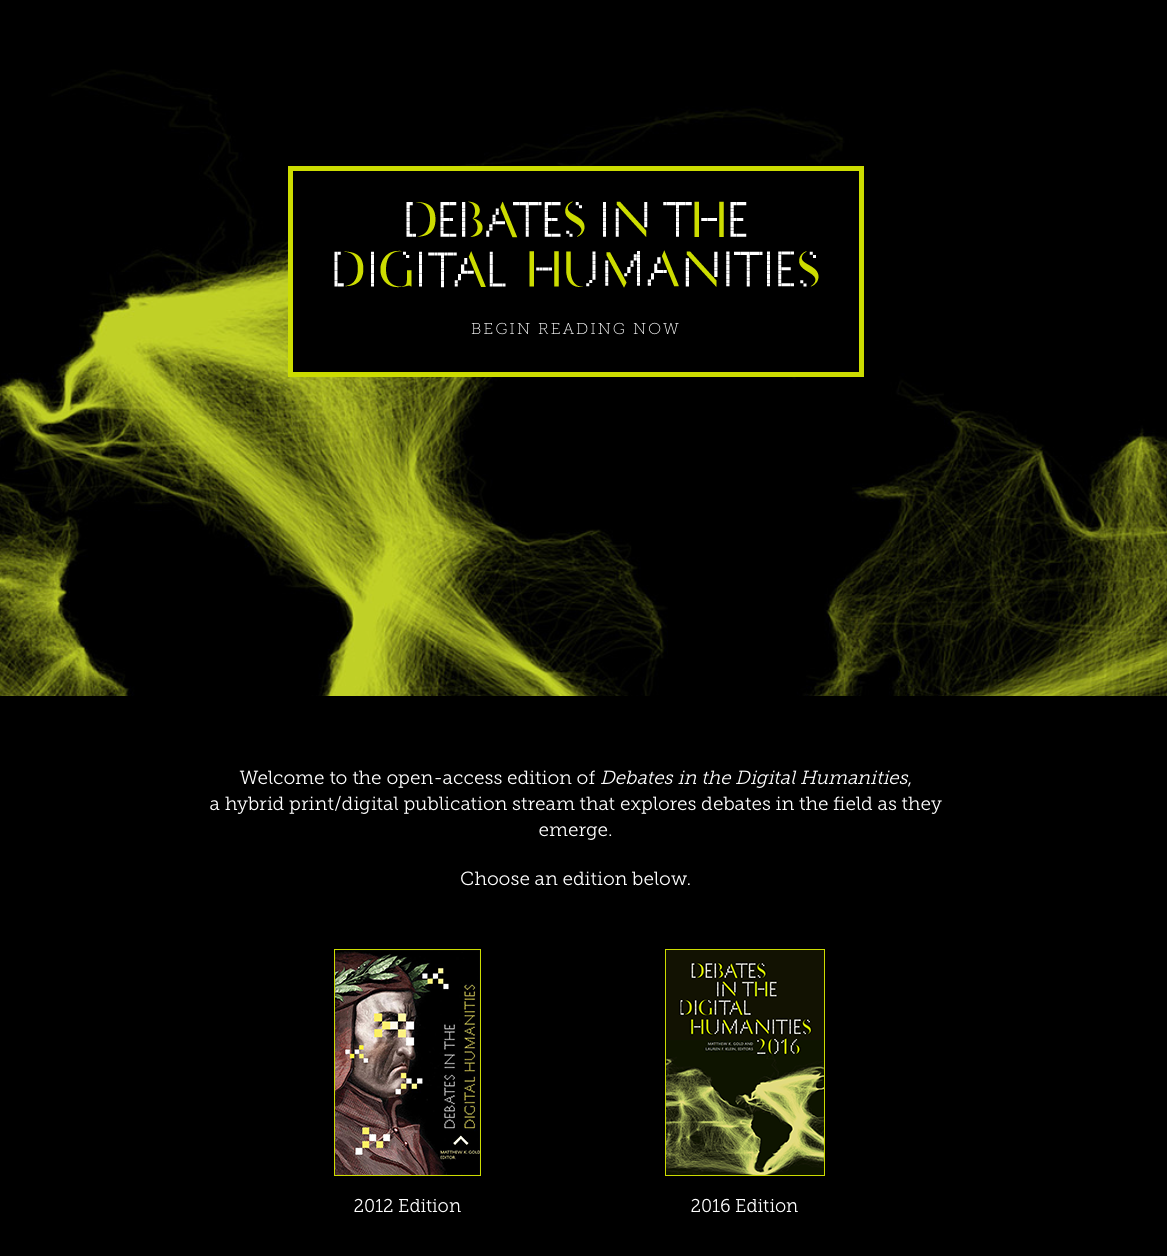 Global Debates in the Digital Humanities